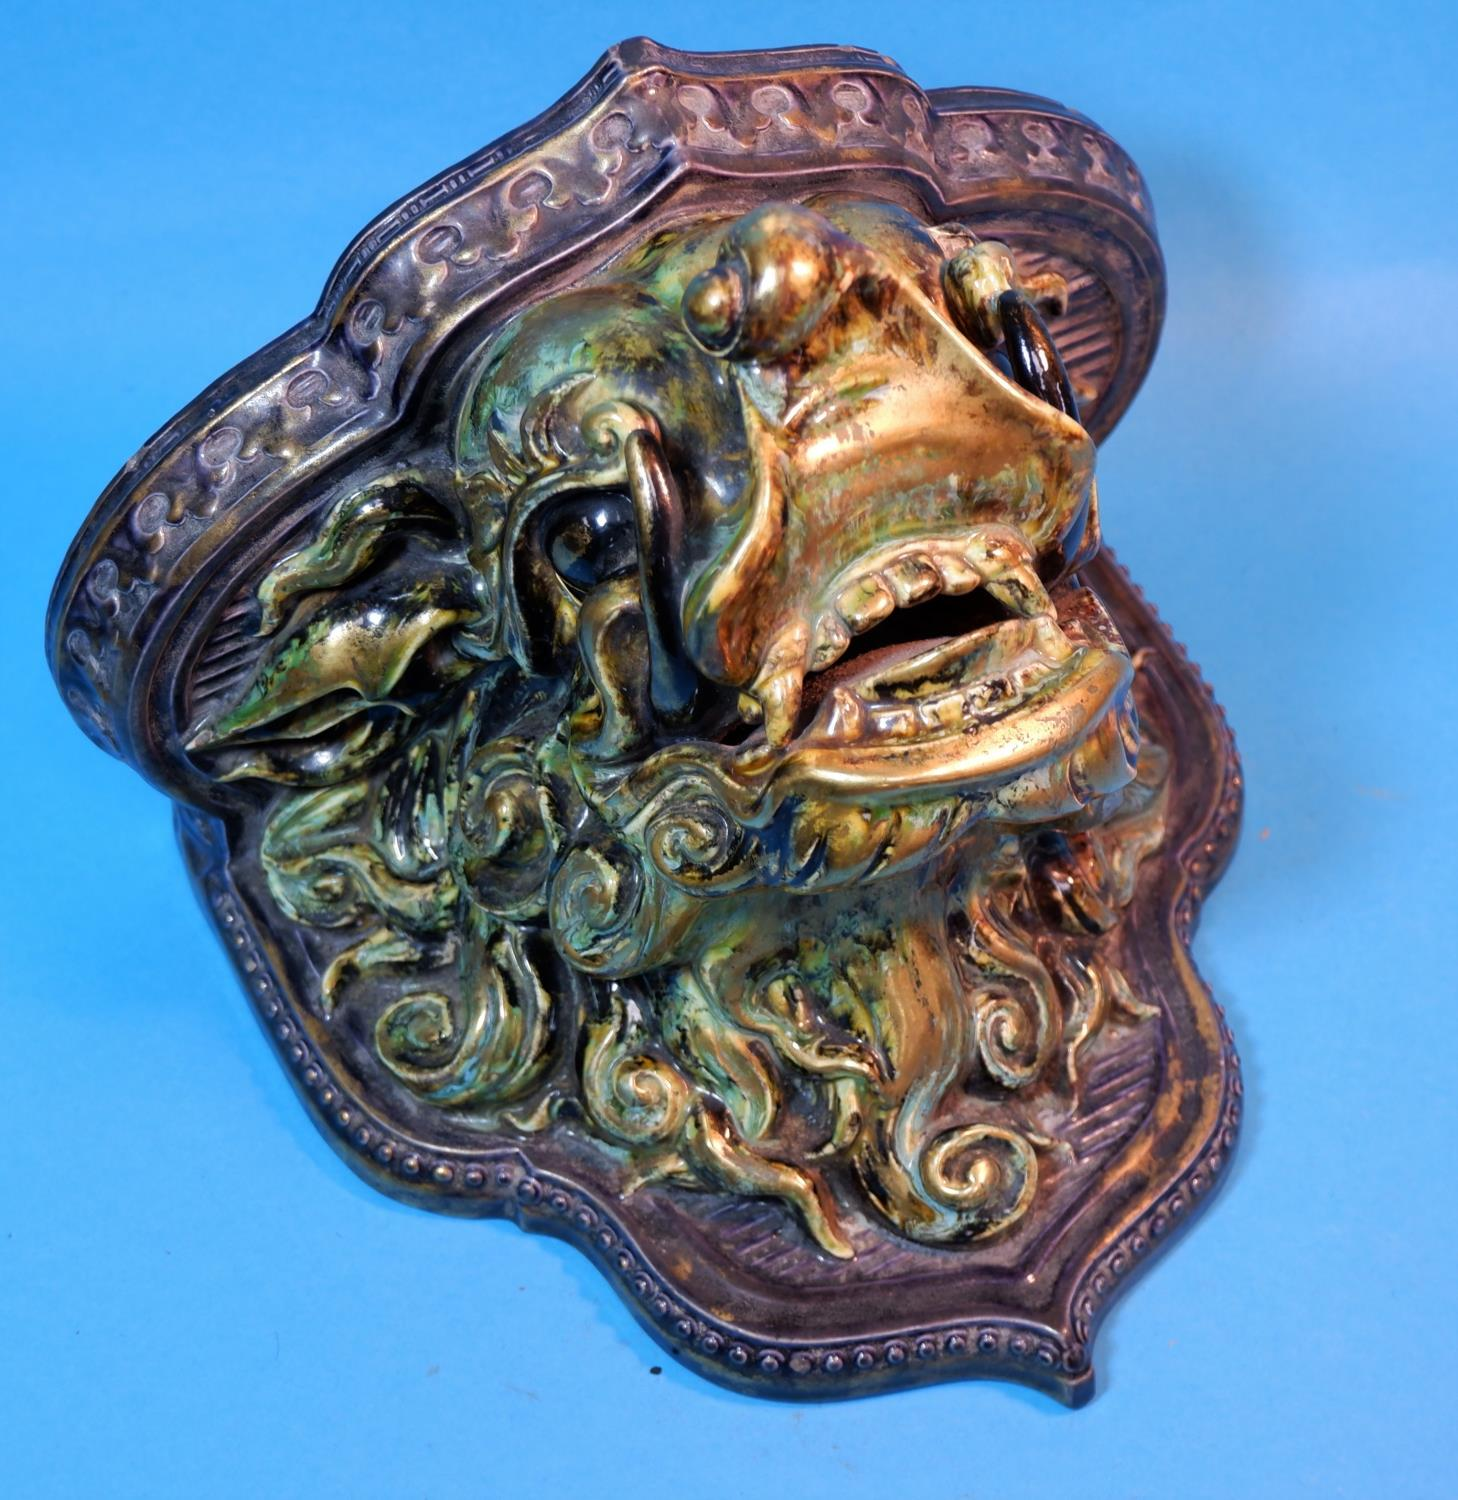 Lot 165A - An unusual Royal Worcester ceramic wall sconce / bracket depicting the head of a Chinese dragon in